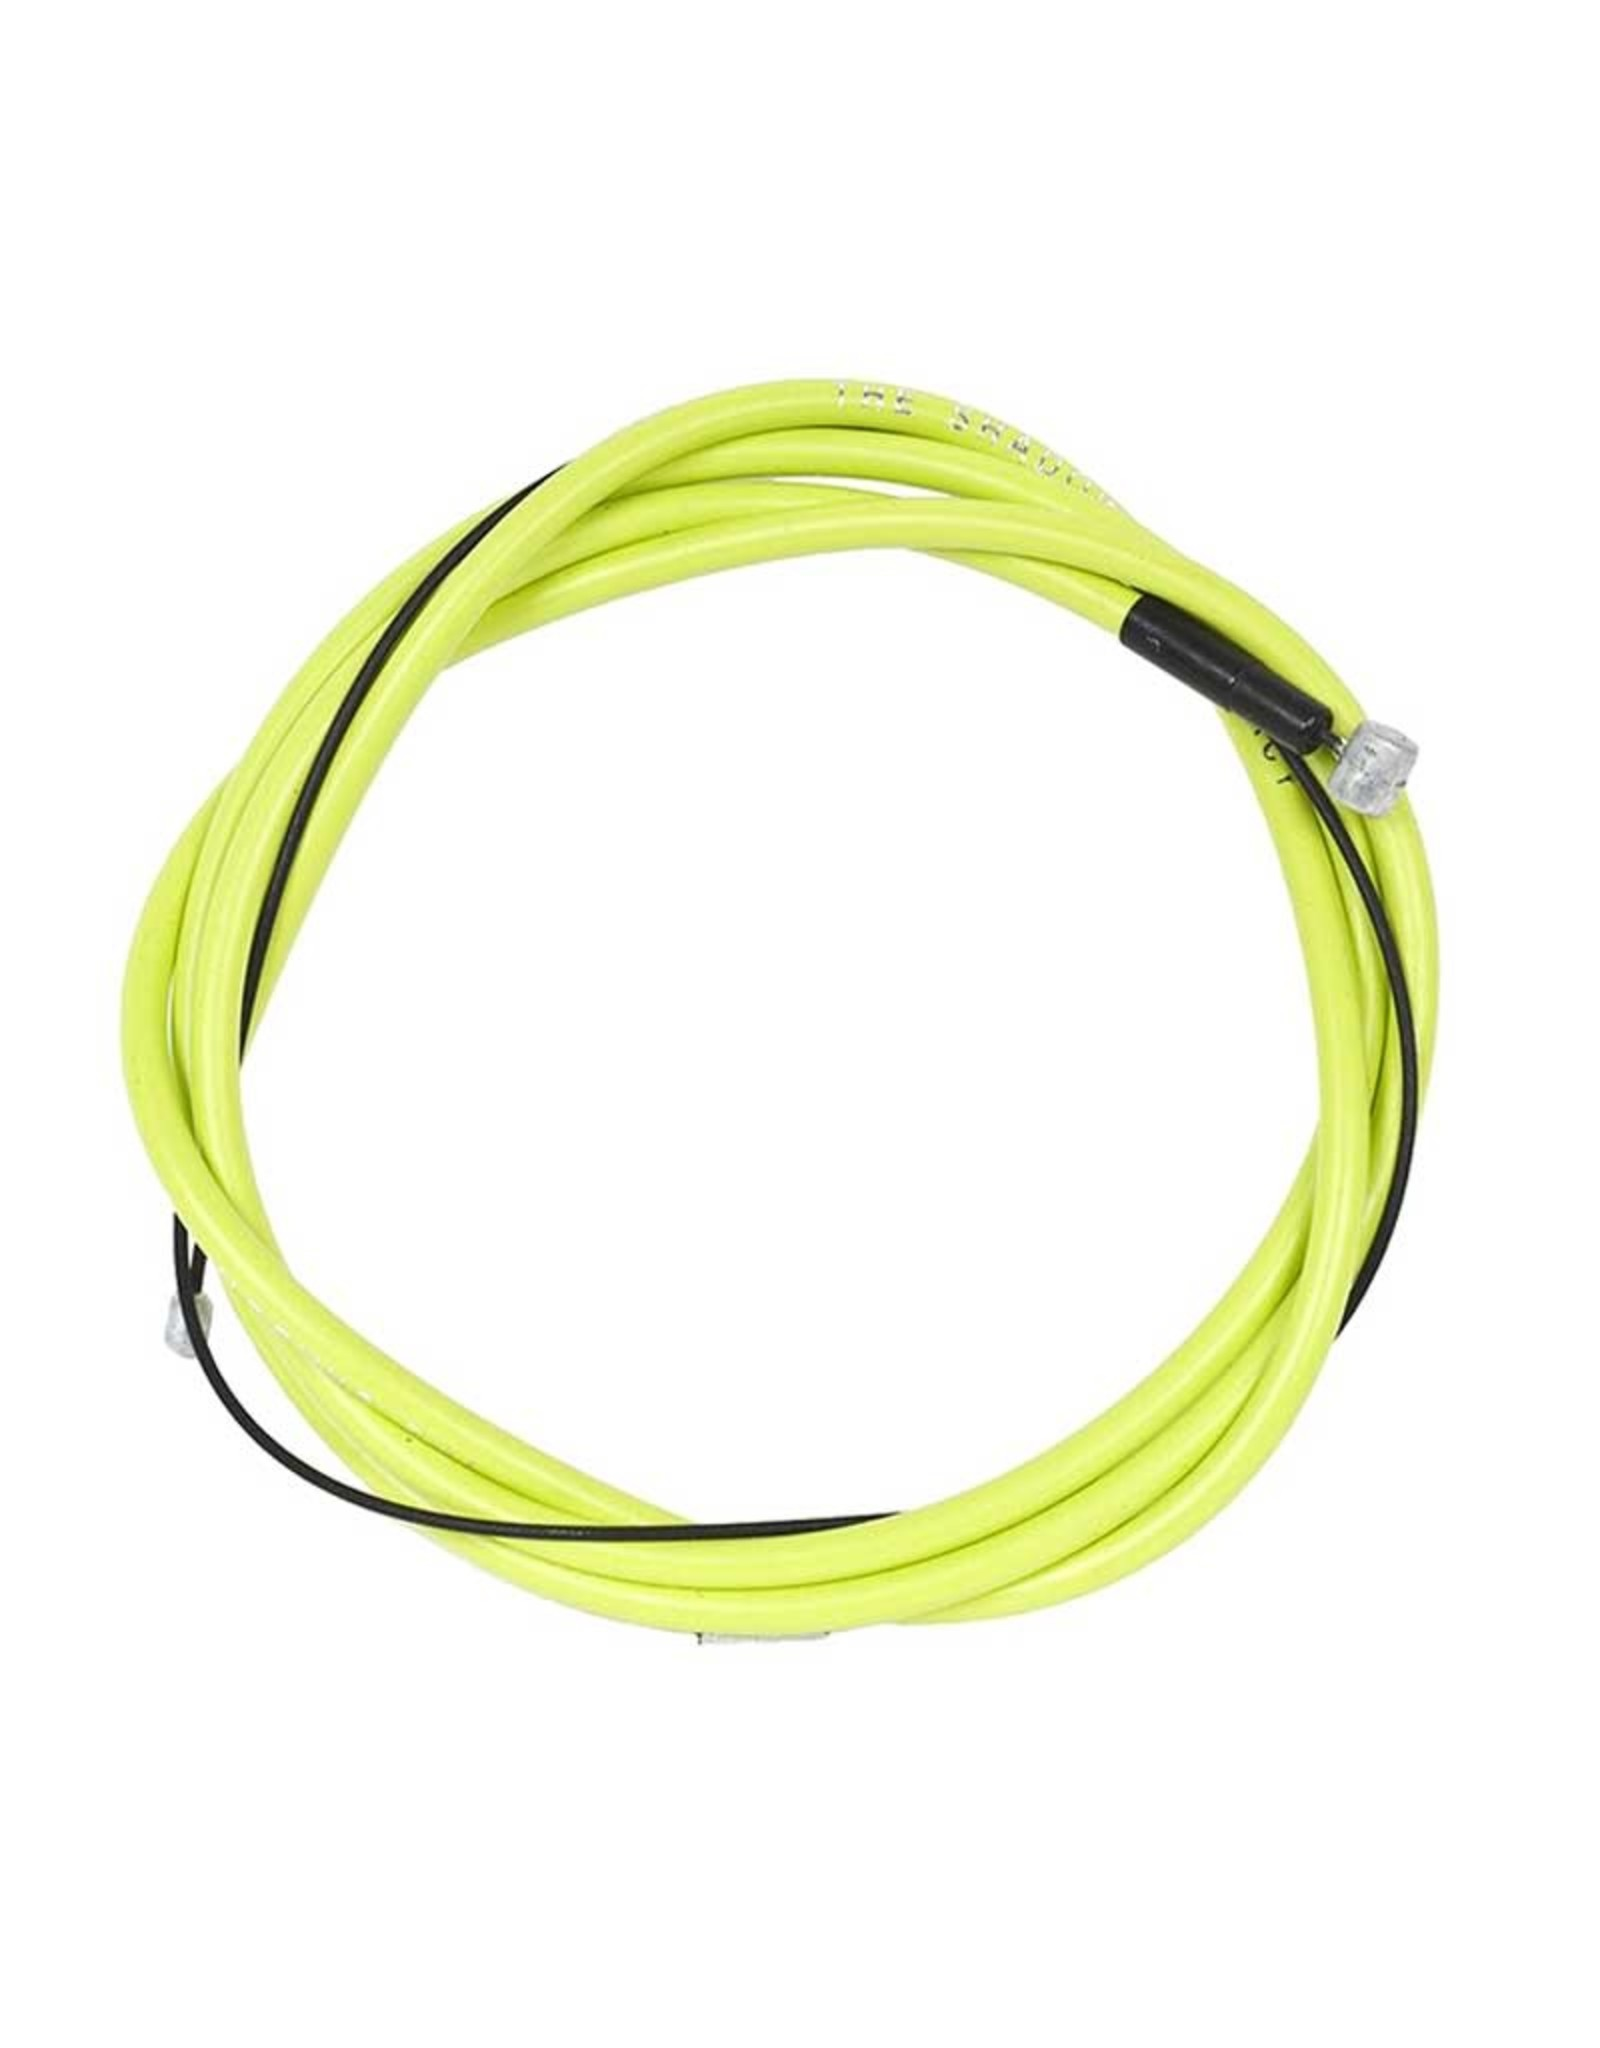 The Shadow Conspiracy TSC Linear Brake Cable